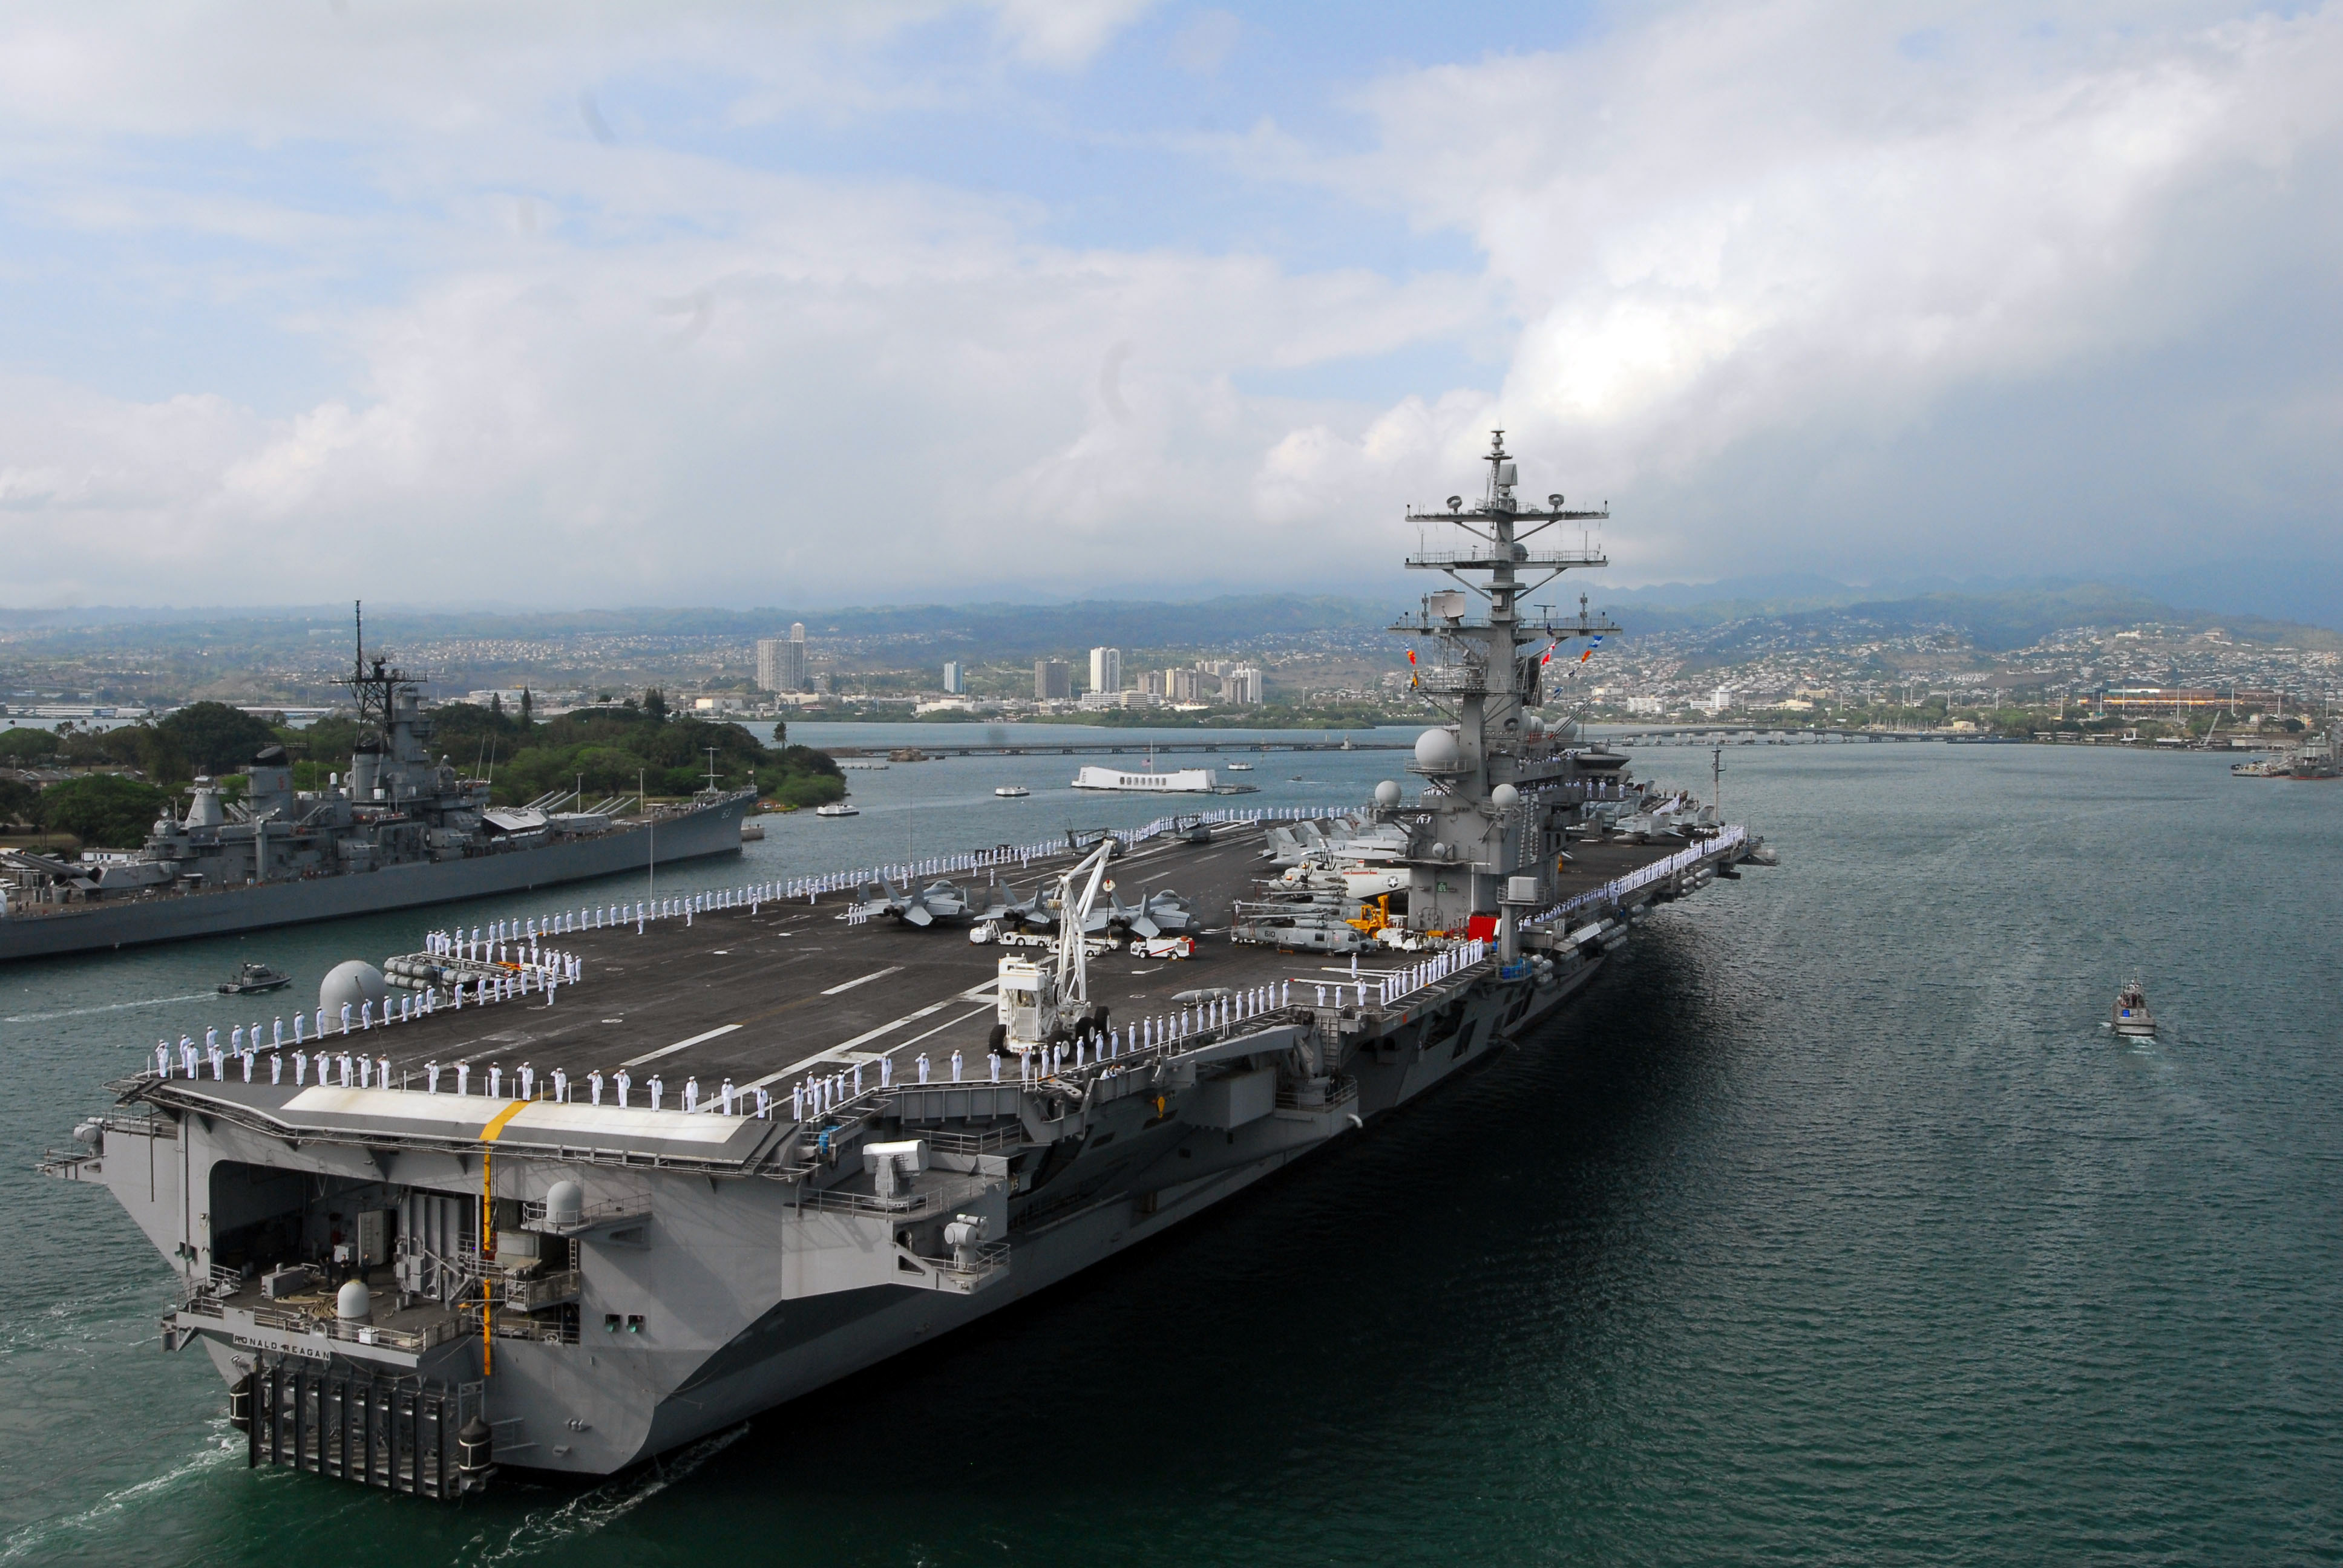 PEARL HARBOR, Hawaii (June 28, 2010) Sailors and Marines man the rails aboard the aircraft carrier USS Ronald Reagan as it passes the USS Missouri and USS Arizona memorials in Pearl Harbor.